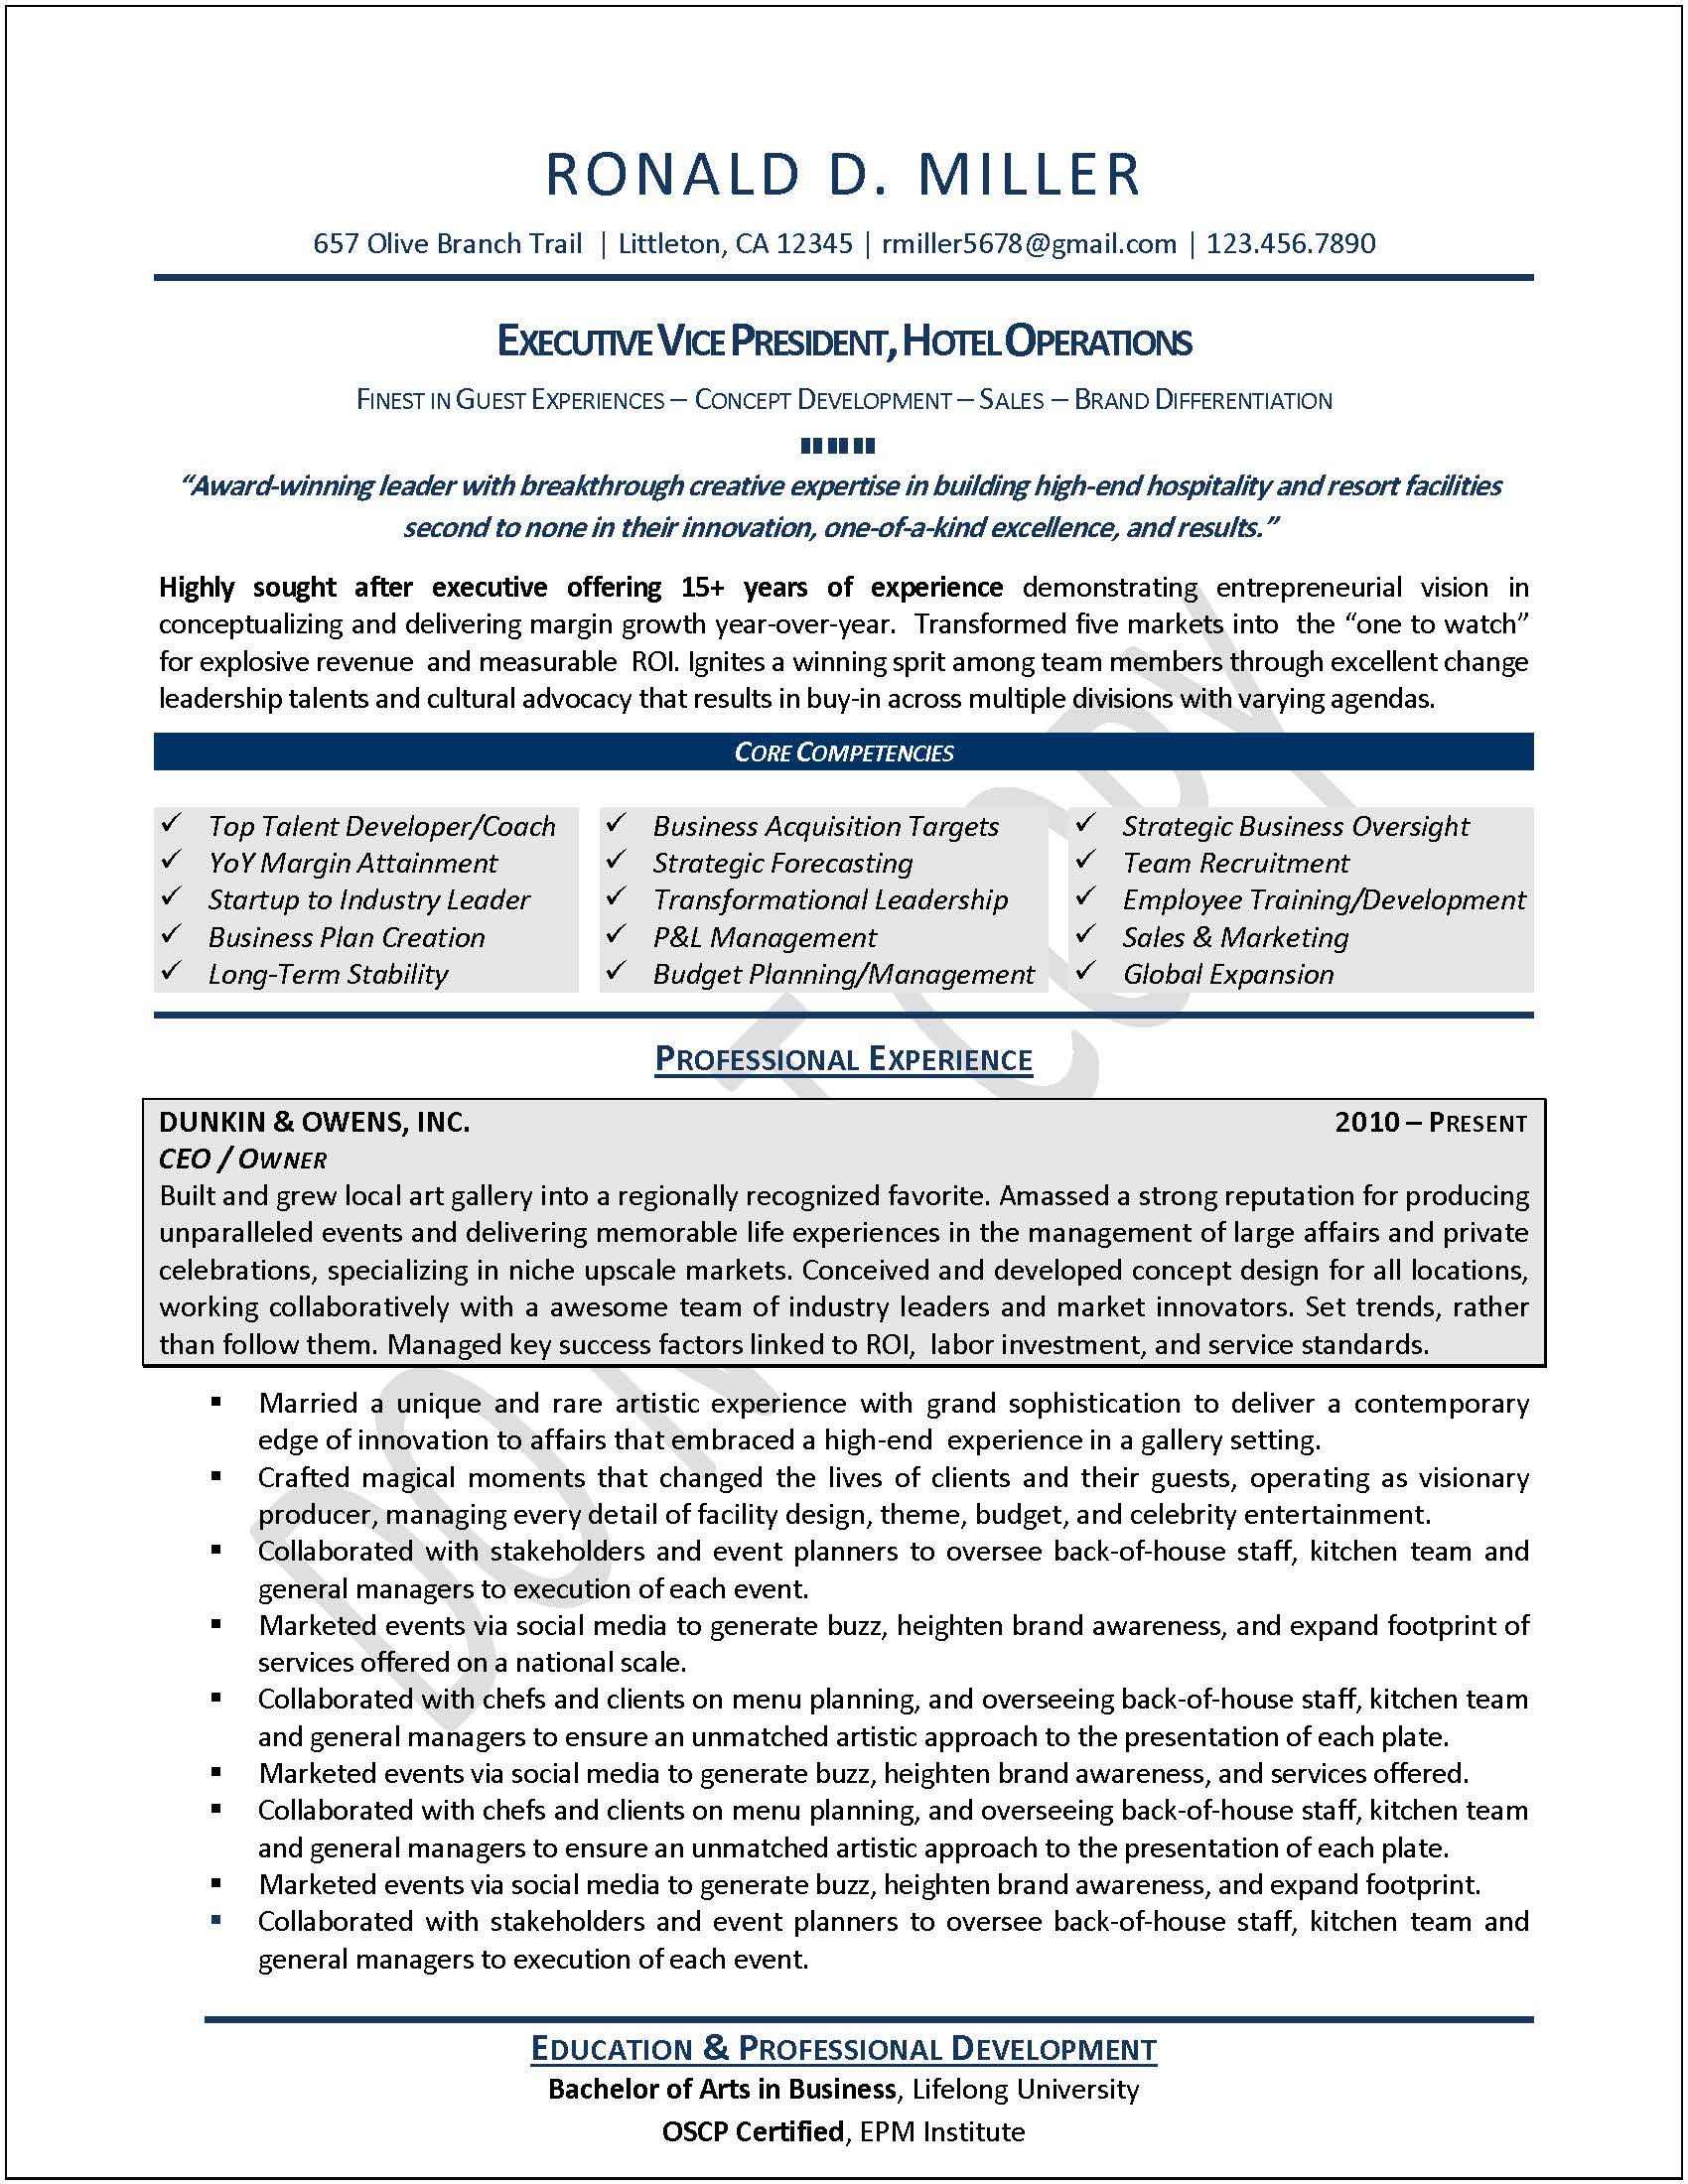 Operations Manager Resume Sample Executive Resume Samples Professional Resume Samples